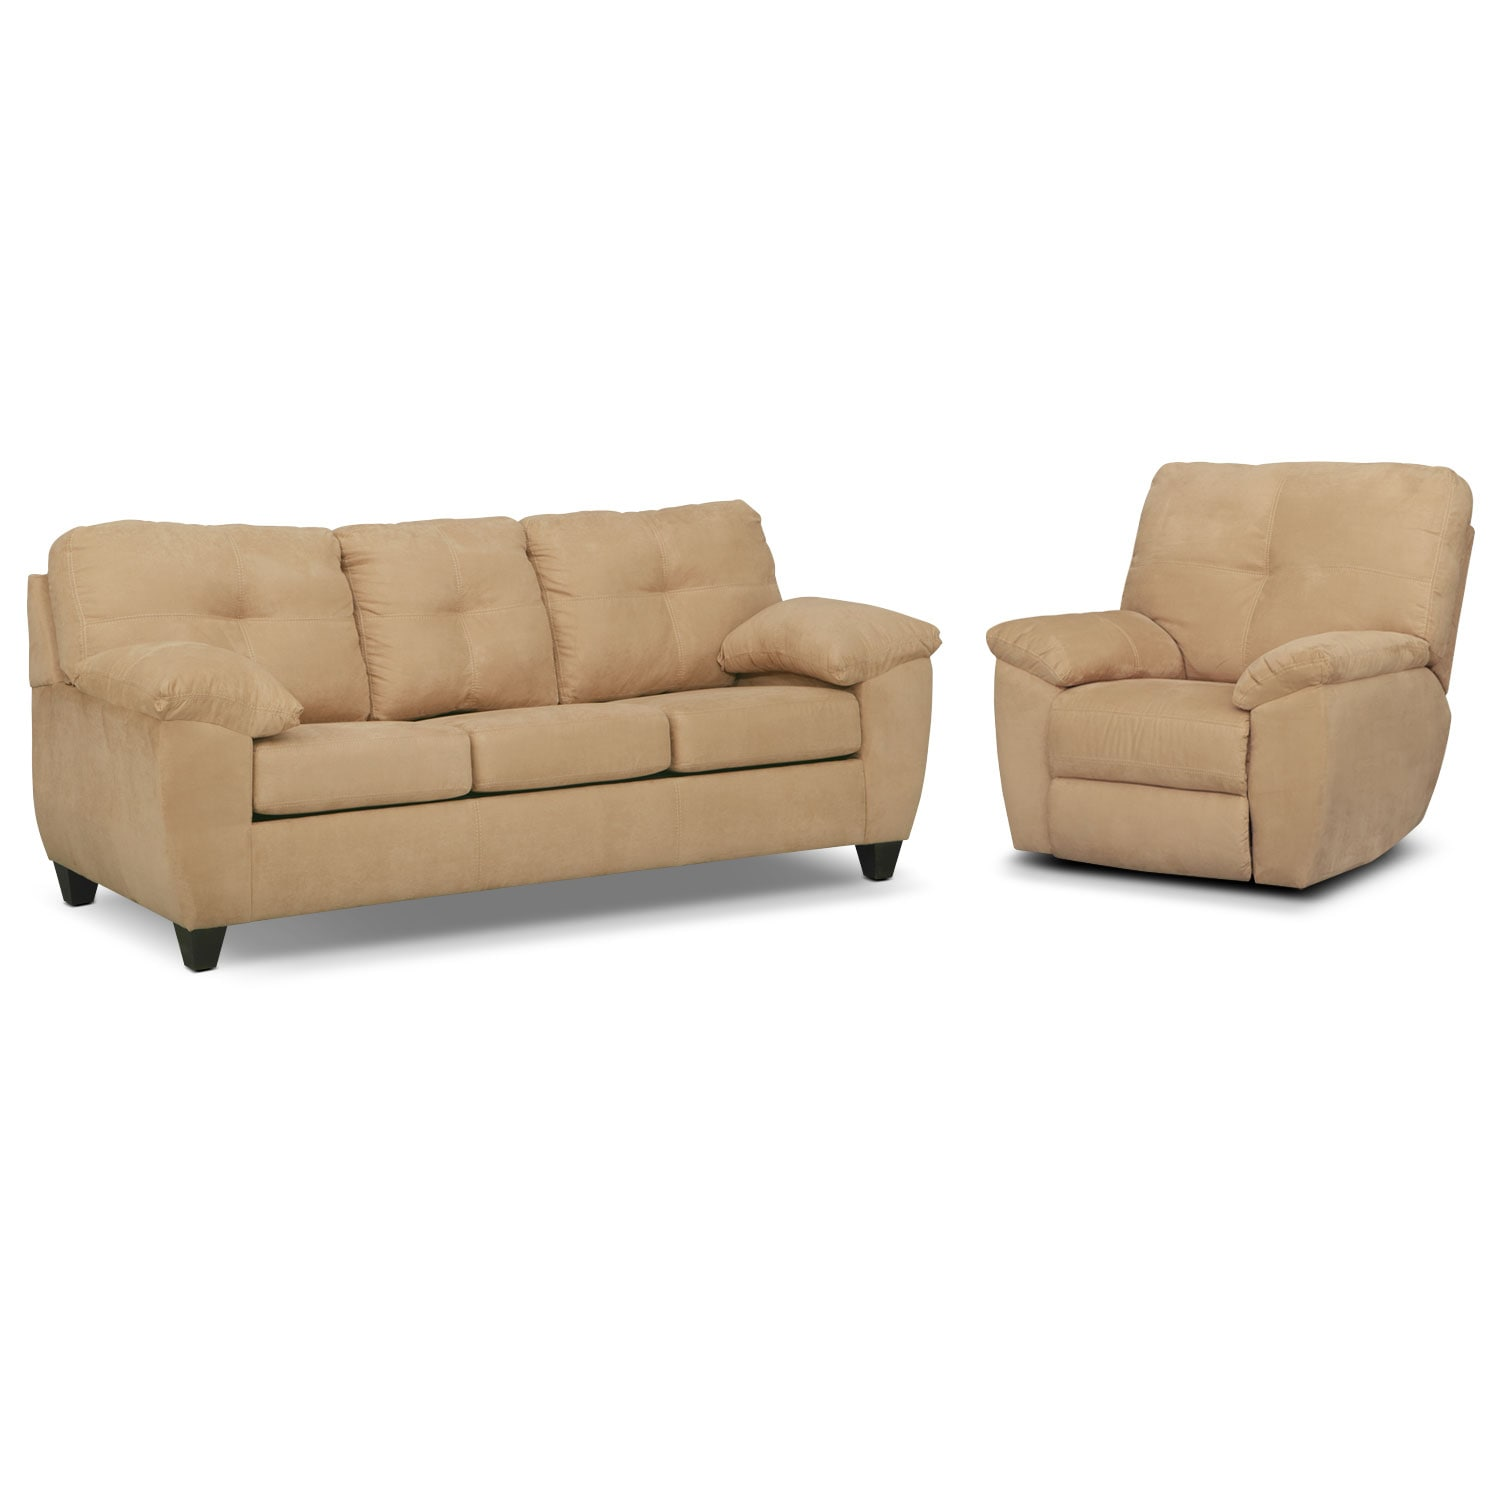 Rialto Memory Foam Sleeper Sofa and Glider Recliner Set - Camel